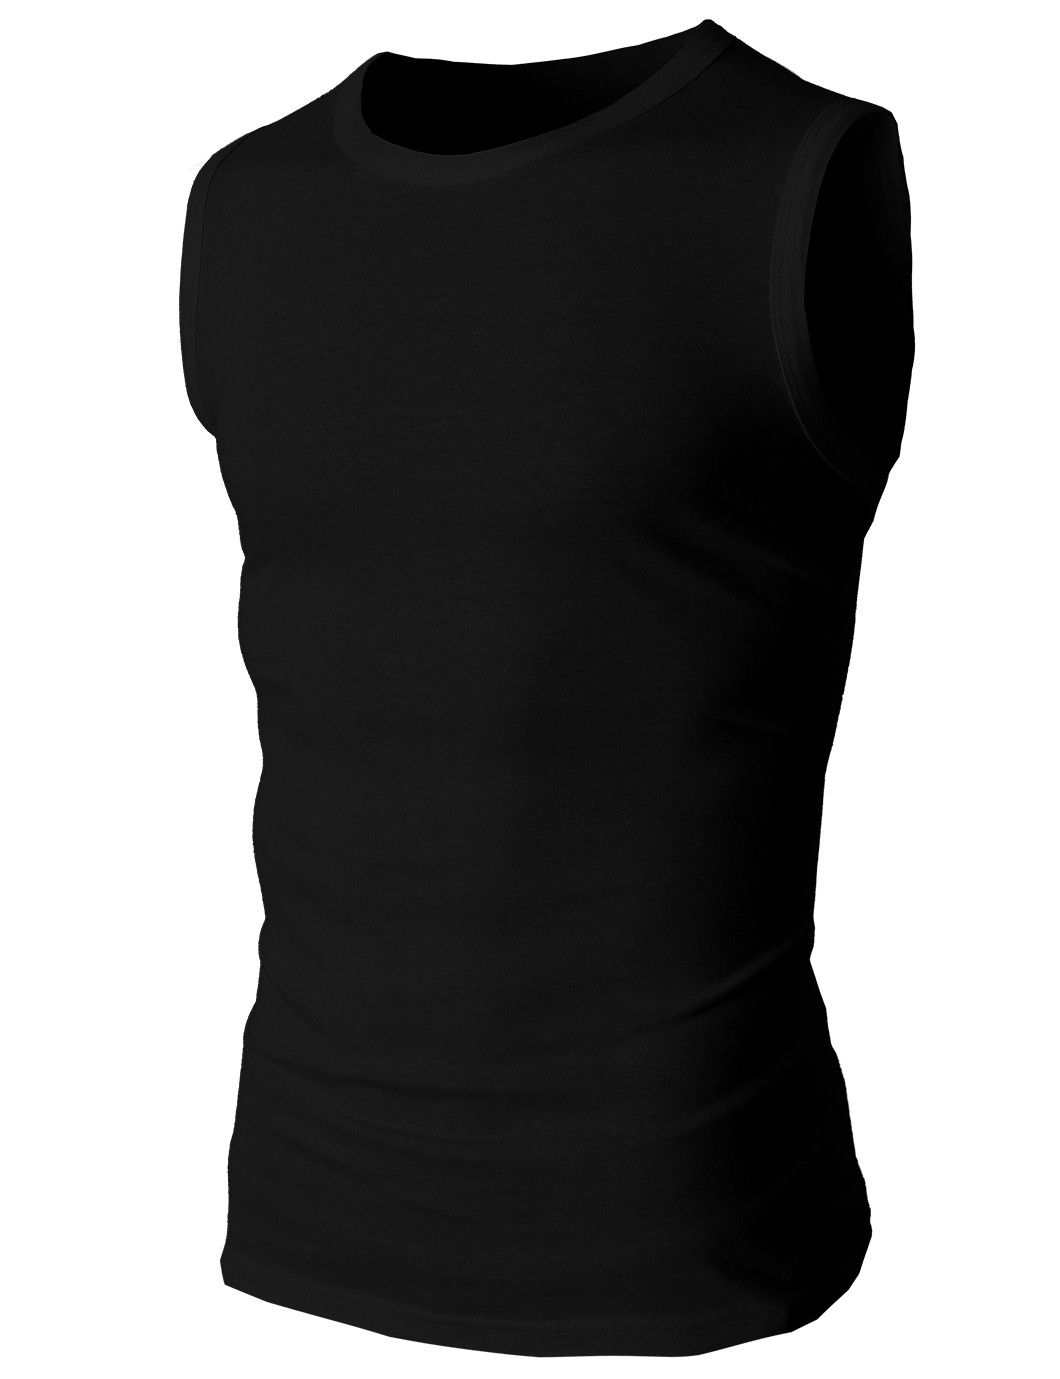 f487ab8fac8dfc Mens Sleeveless Crewneck Solid Color Slim Fit Tank Top Style no    Lightweight